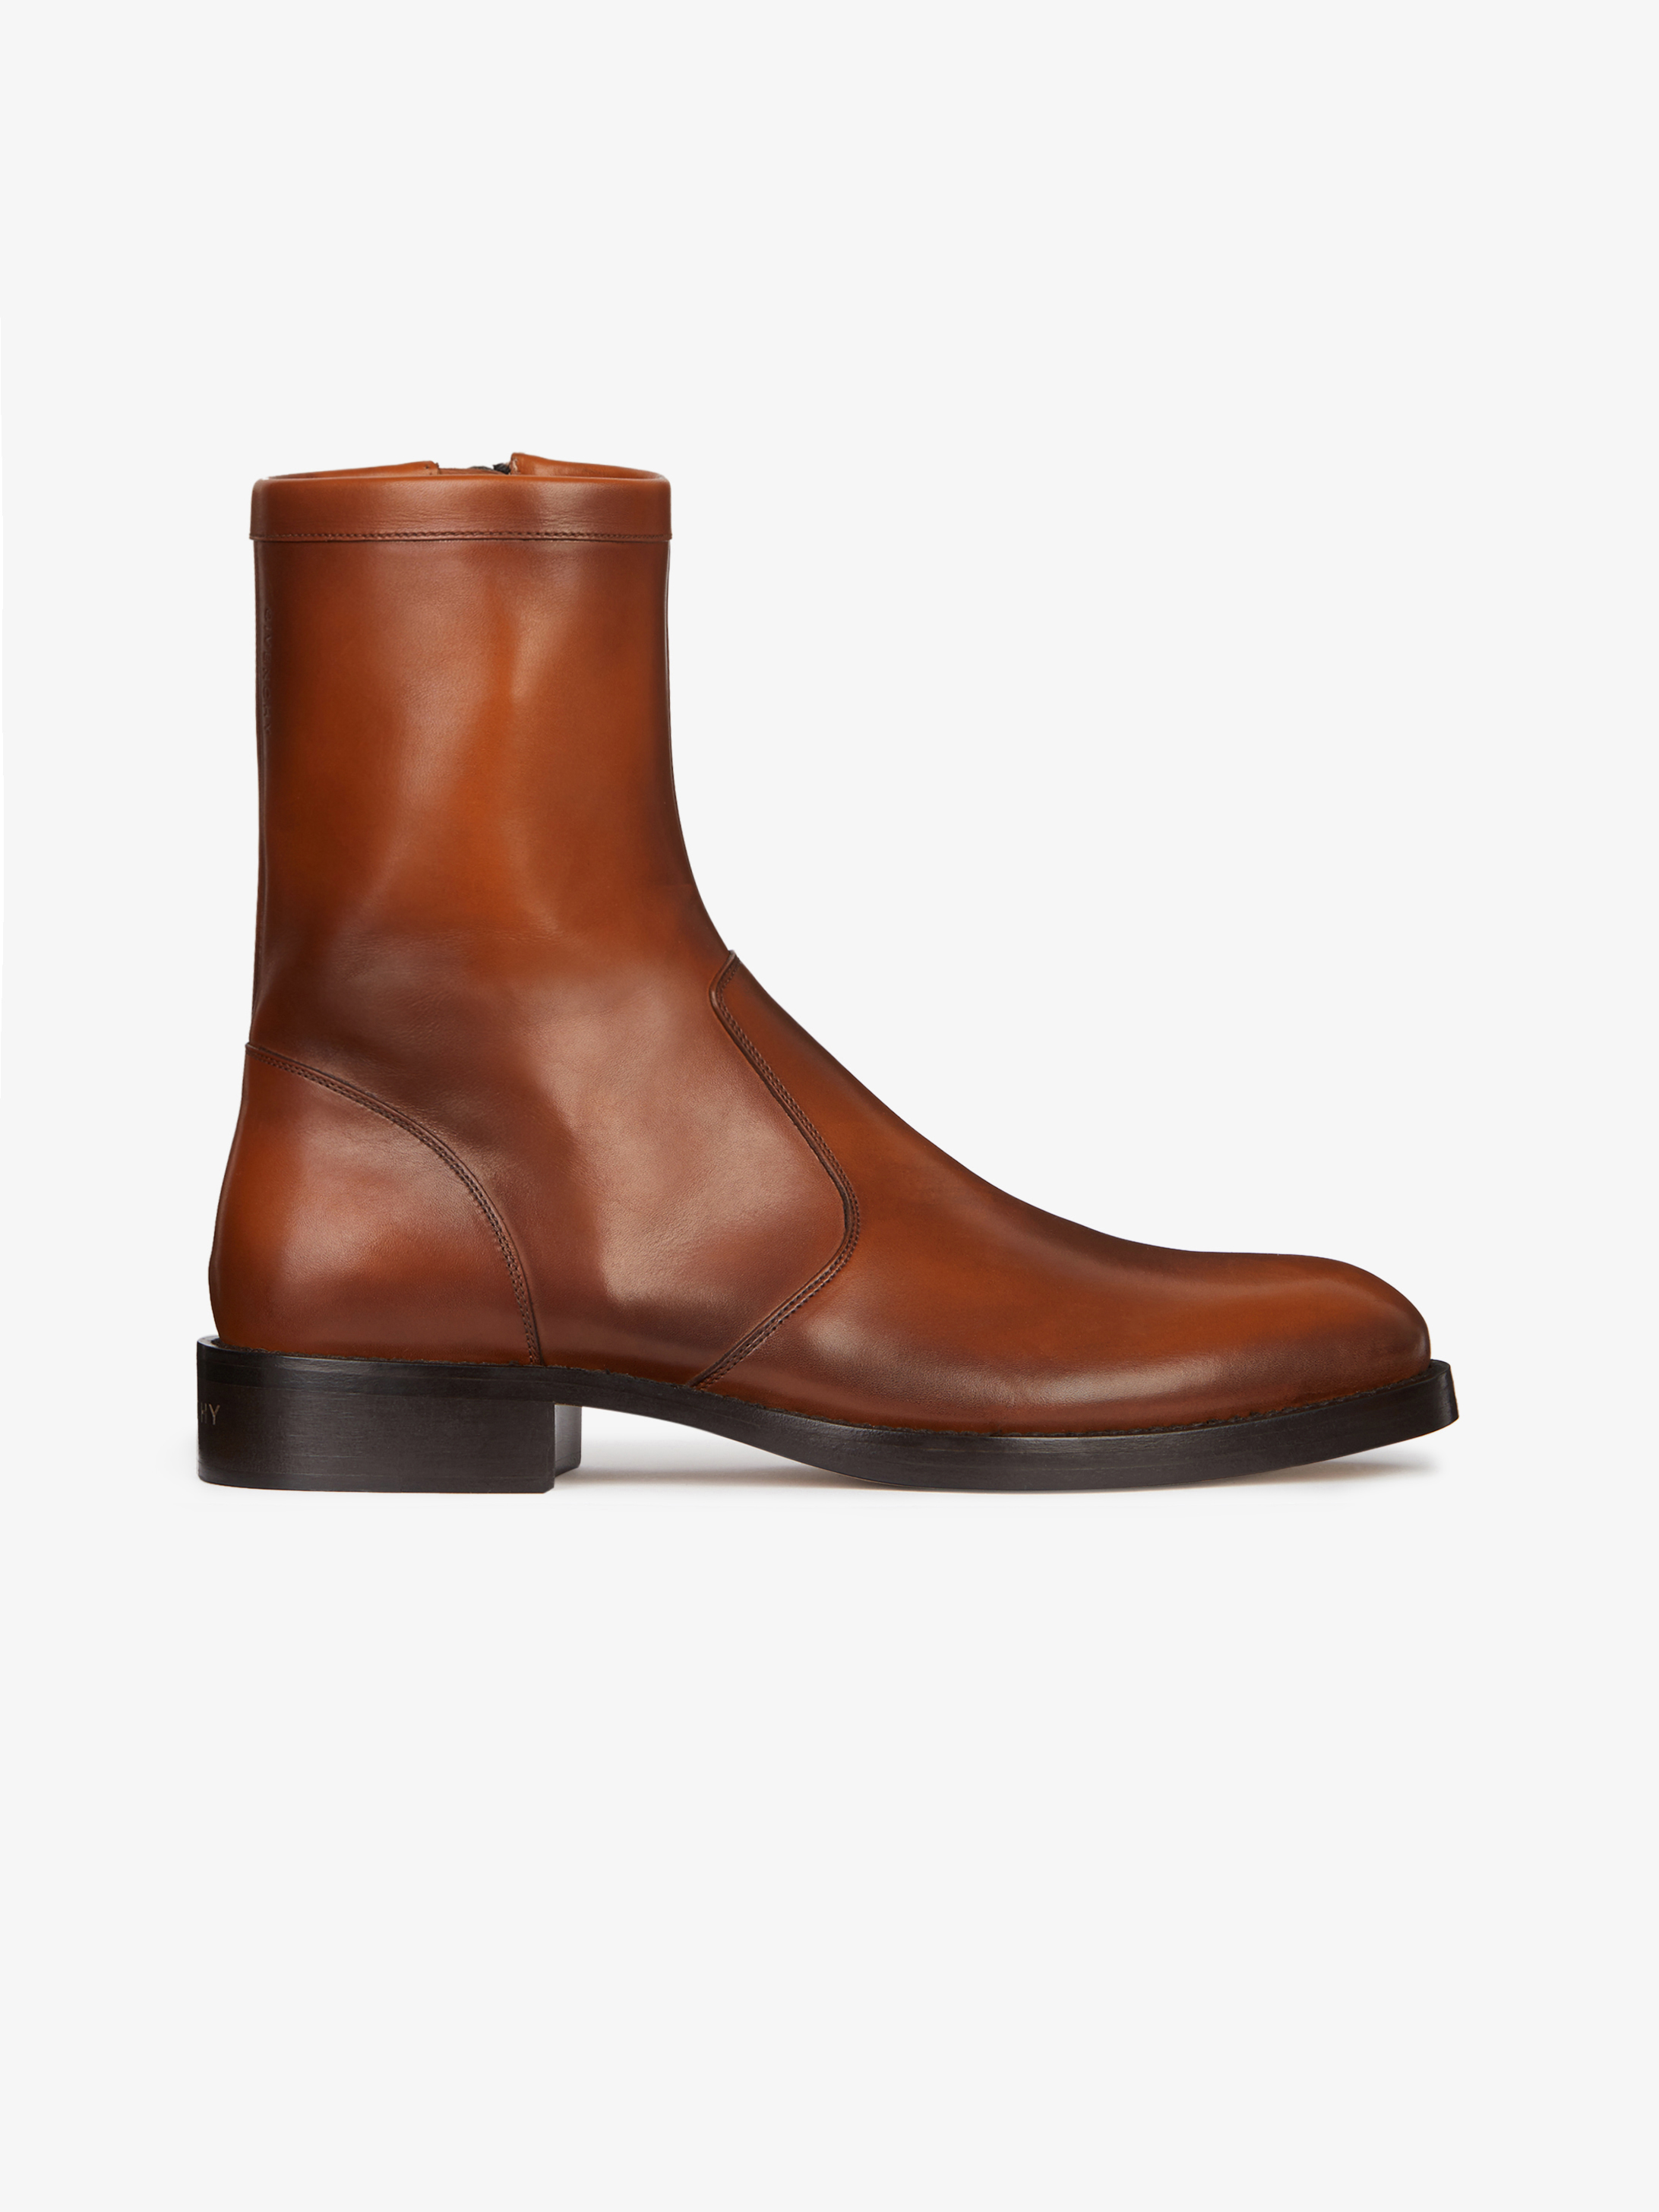 Boots in waxed leather